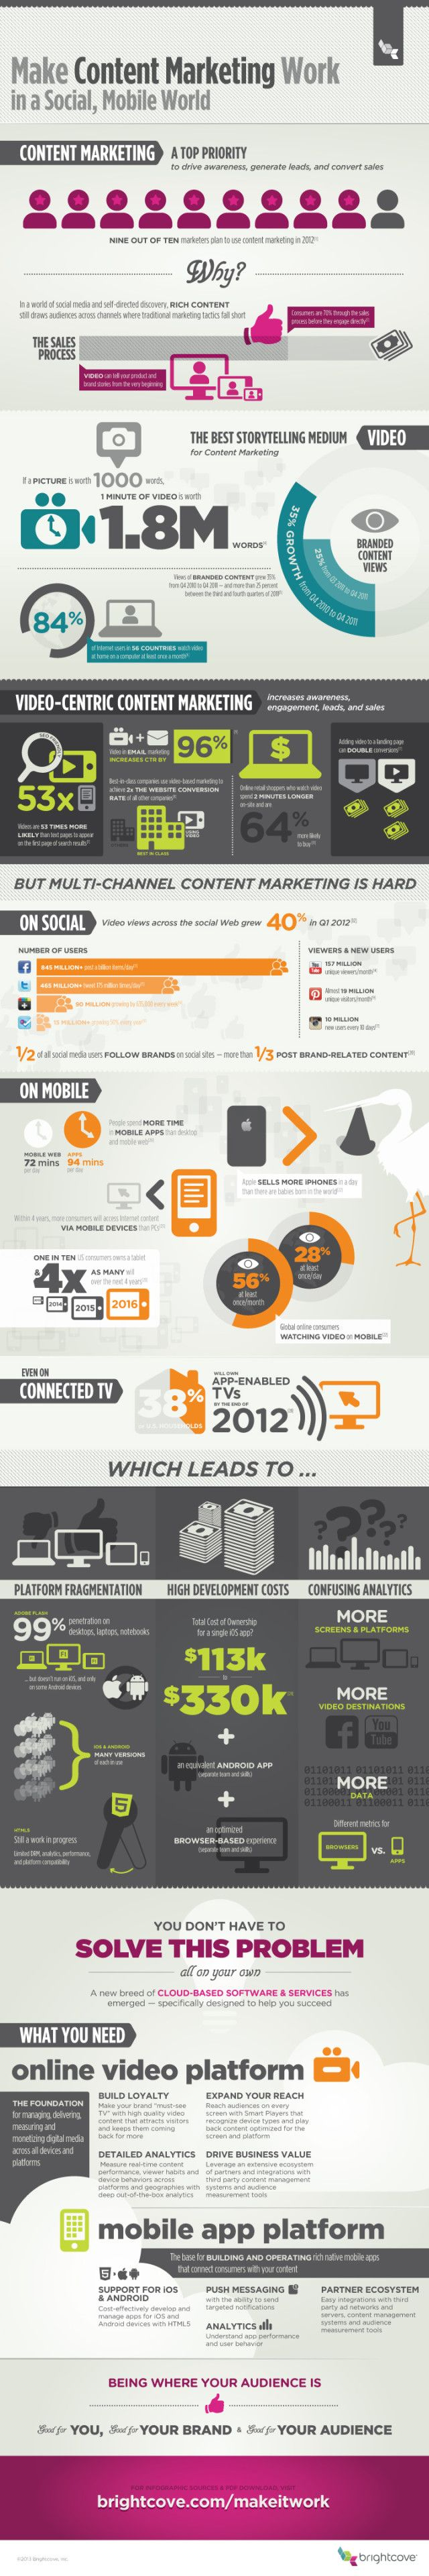 Infographic: Content Marketing in a Social, Mobile World - Marketing Technology Blog